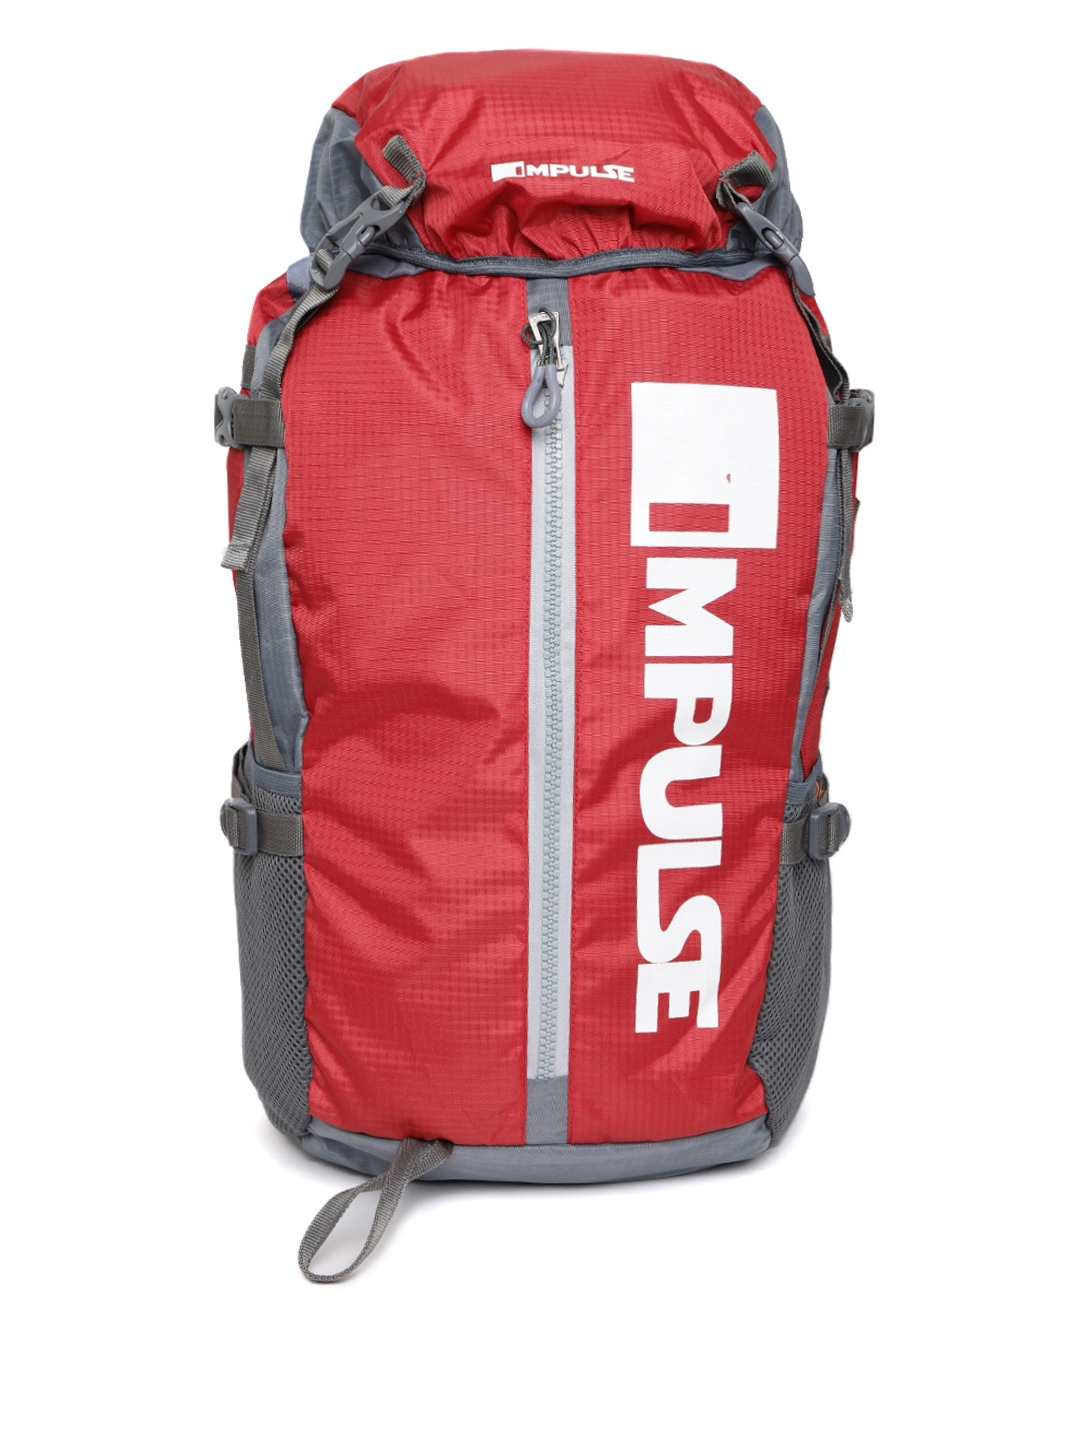 Rucksack - Buy Rucksack Bag Online in India at Best Price  4e6909aca4065